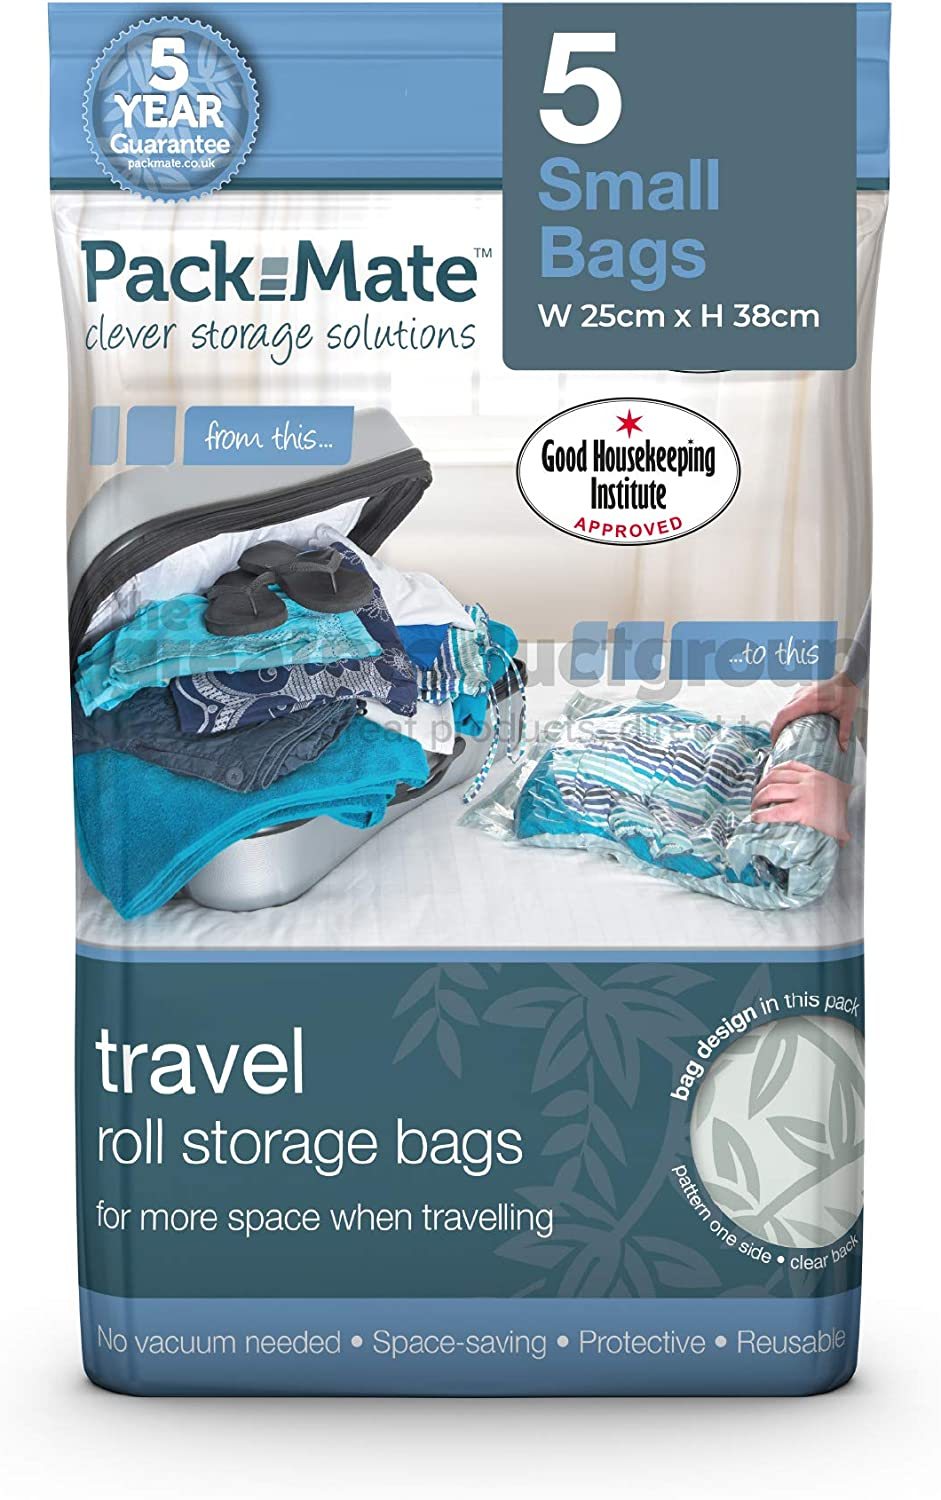 """Packmate Travel /""""roll by hand/"""" Vacuum Bag spacesaver luggage bags 70 x 50cm Premium quality market-leading brand reusable 4 Large"""